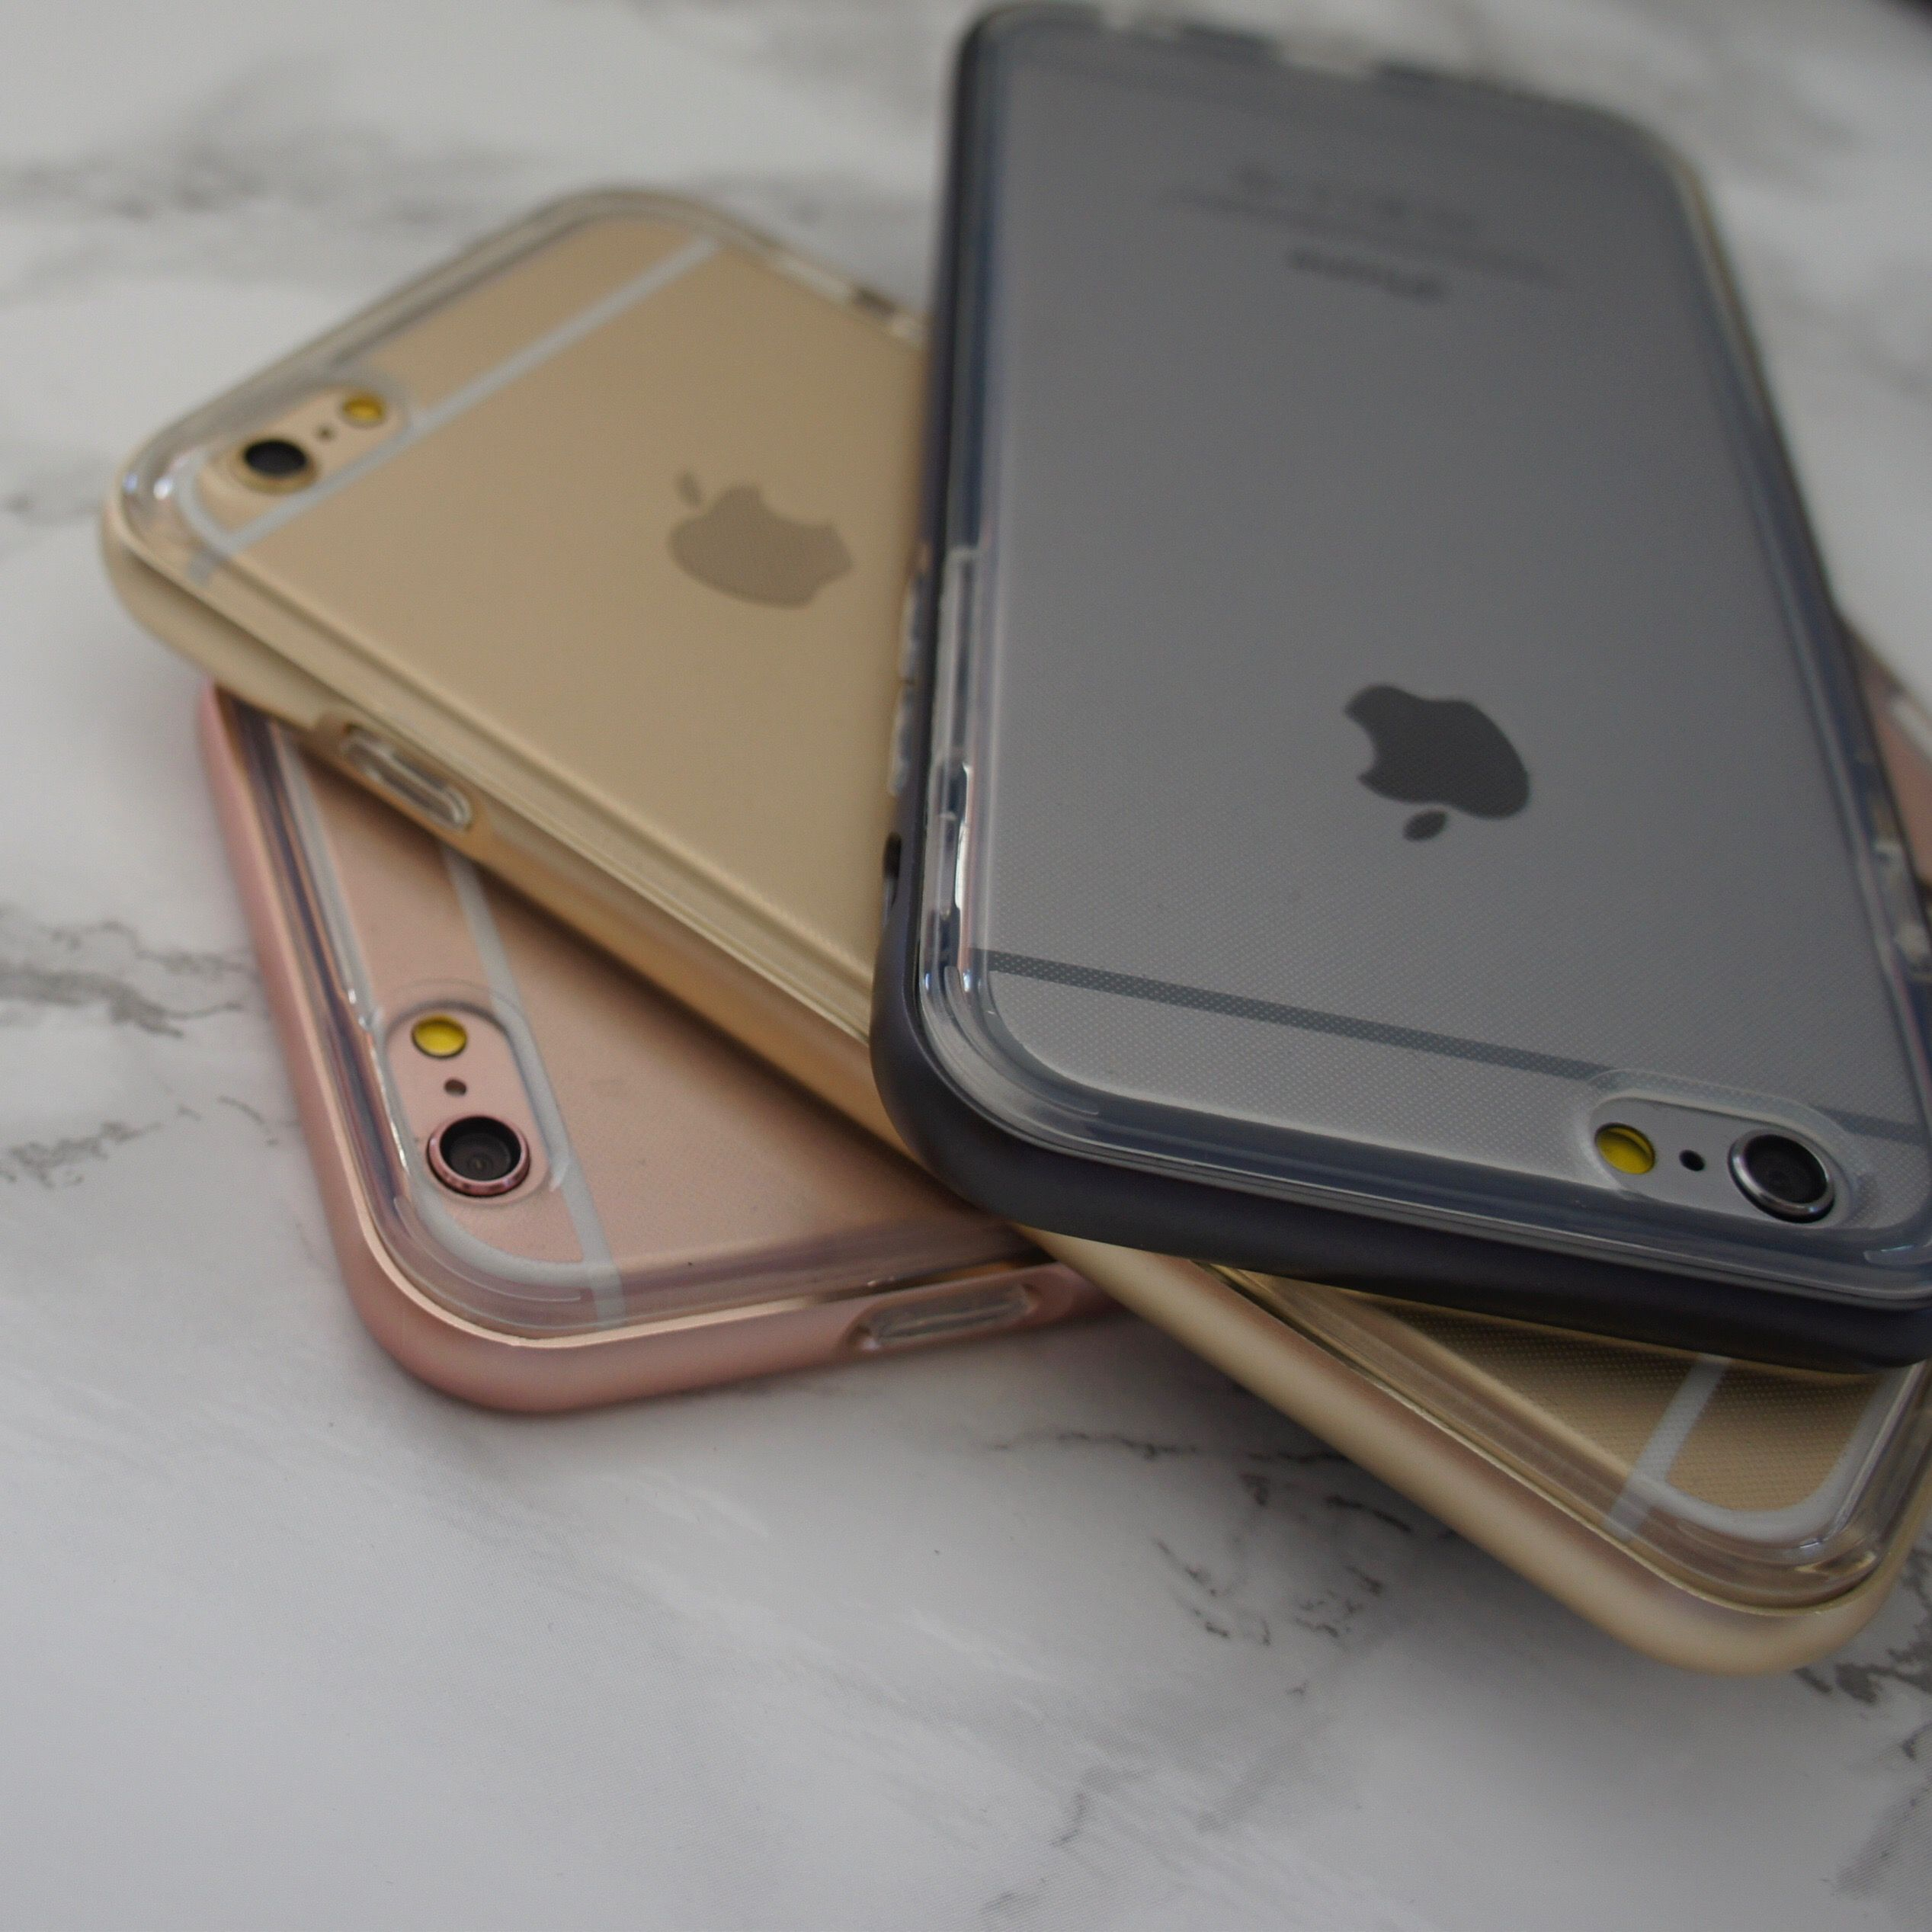 Medical research and corporate technology case mate iphone 4 case - Rose Smoke X Matte Gold X Smoke Gunmetal Hybrid Cases From Elemental Cases